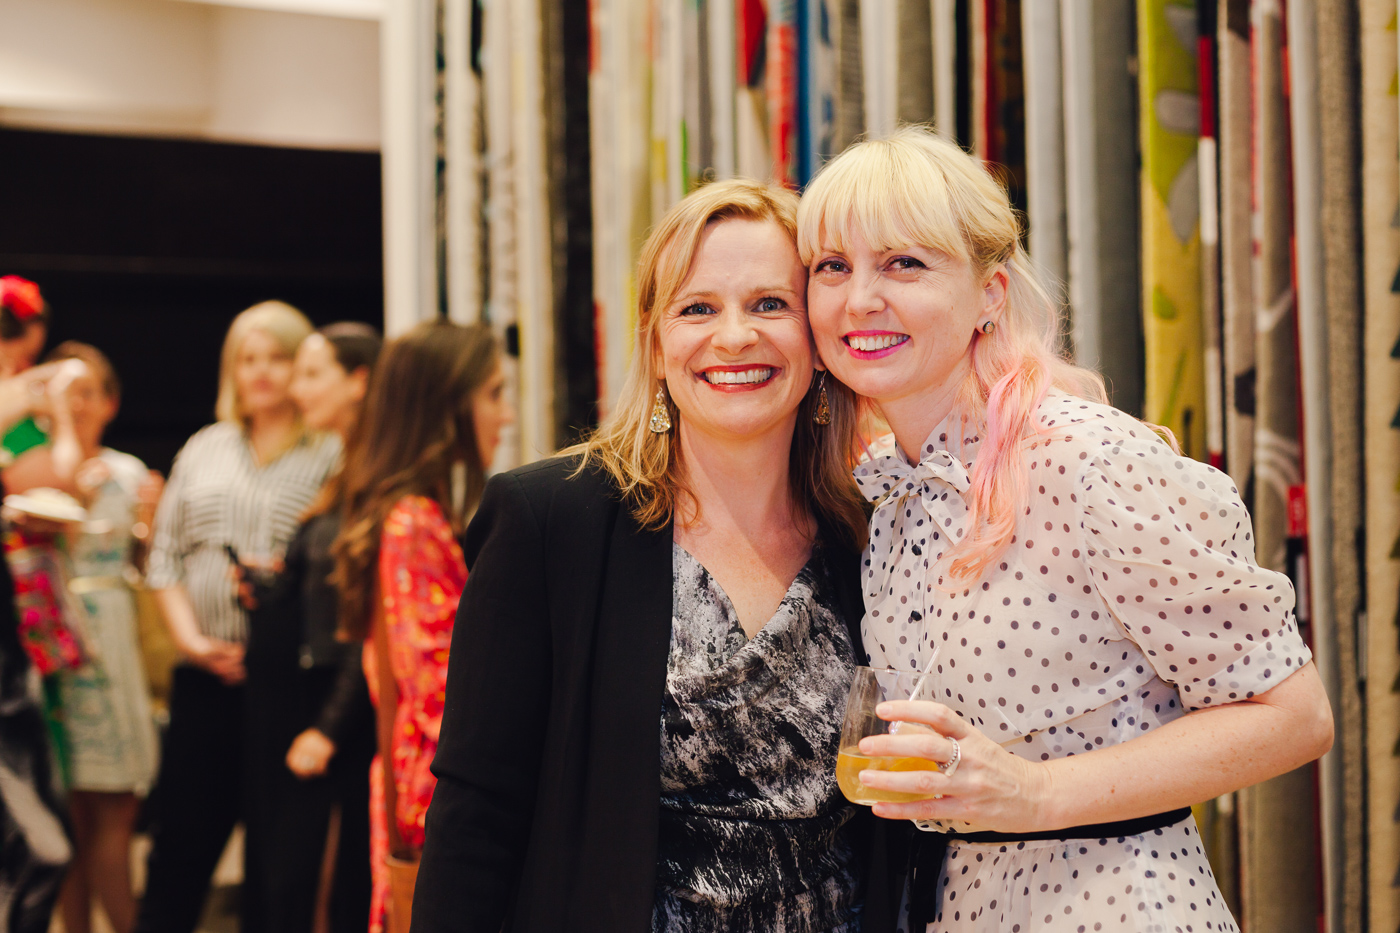 With Kristy Taylor | NEW AGAIN by Petrina Turner Design for Designer Rugs | The launch event